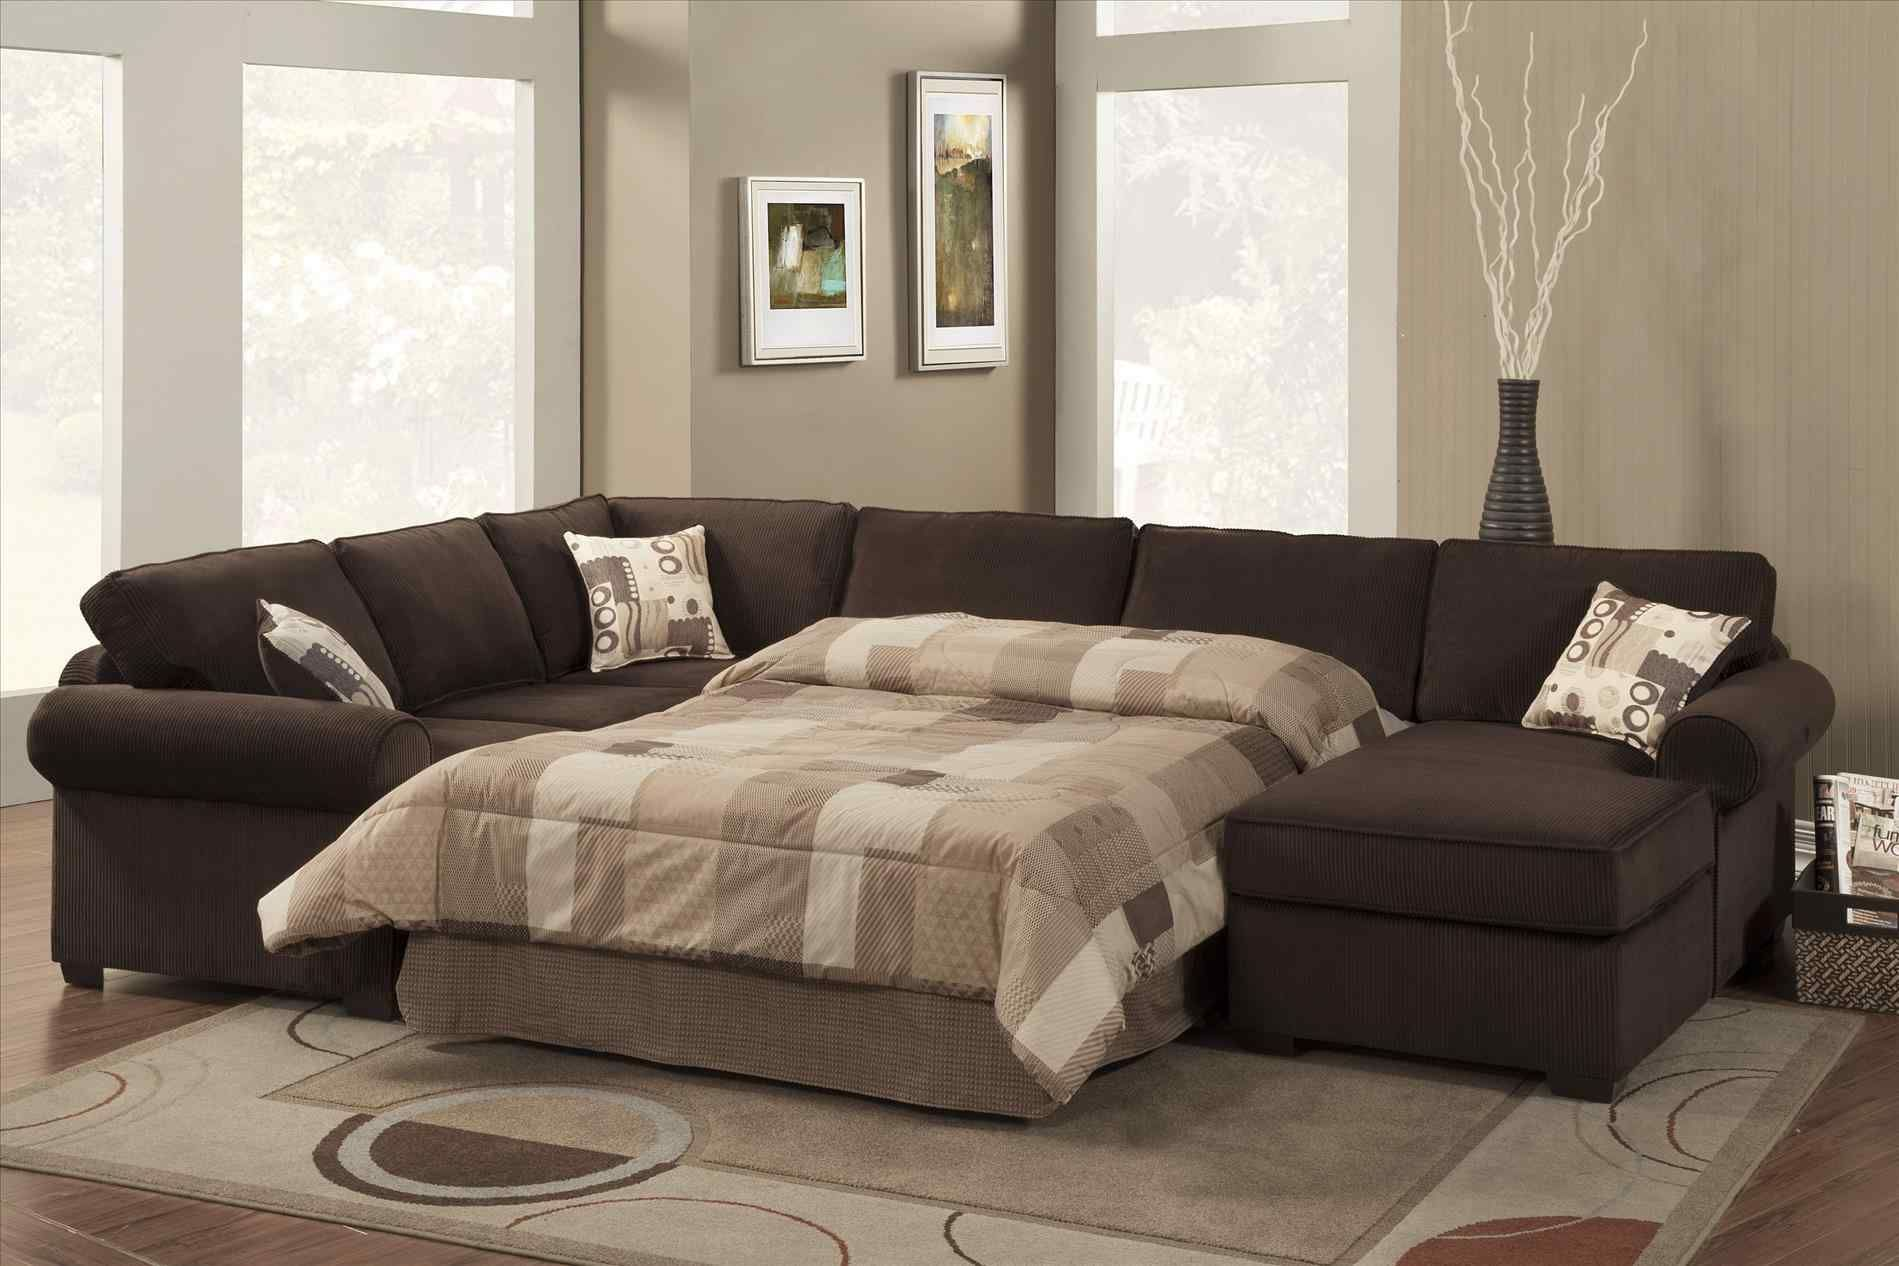 Blog Cheap Furniture Stores Near Me Patio Timl Cheap Best Deals On Sectional Sofas Fur Sectional Sofa With Chaise Sofas For Small Spaces Sectional Sleeper Sofa